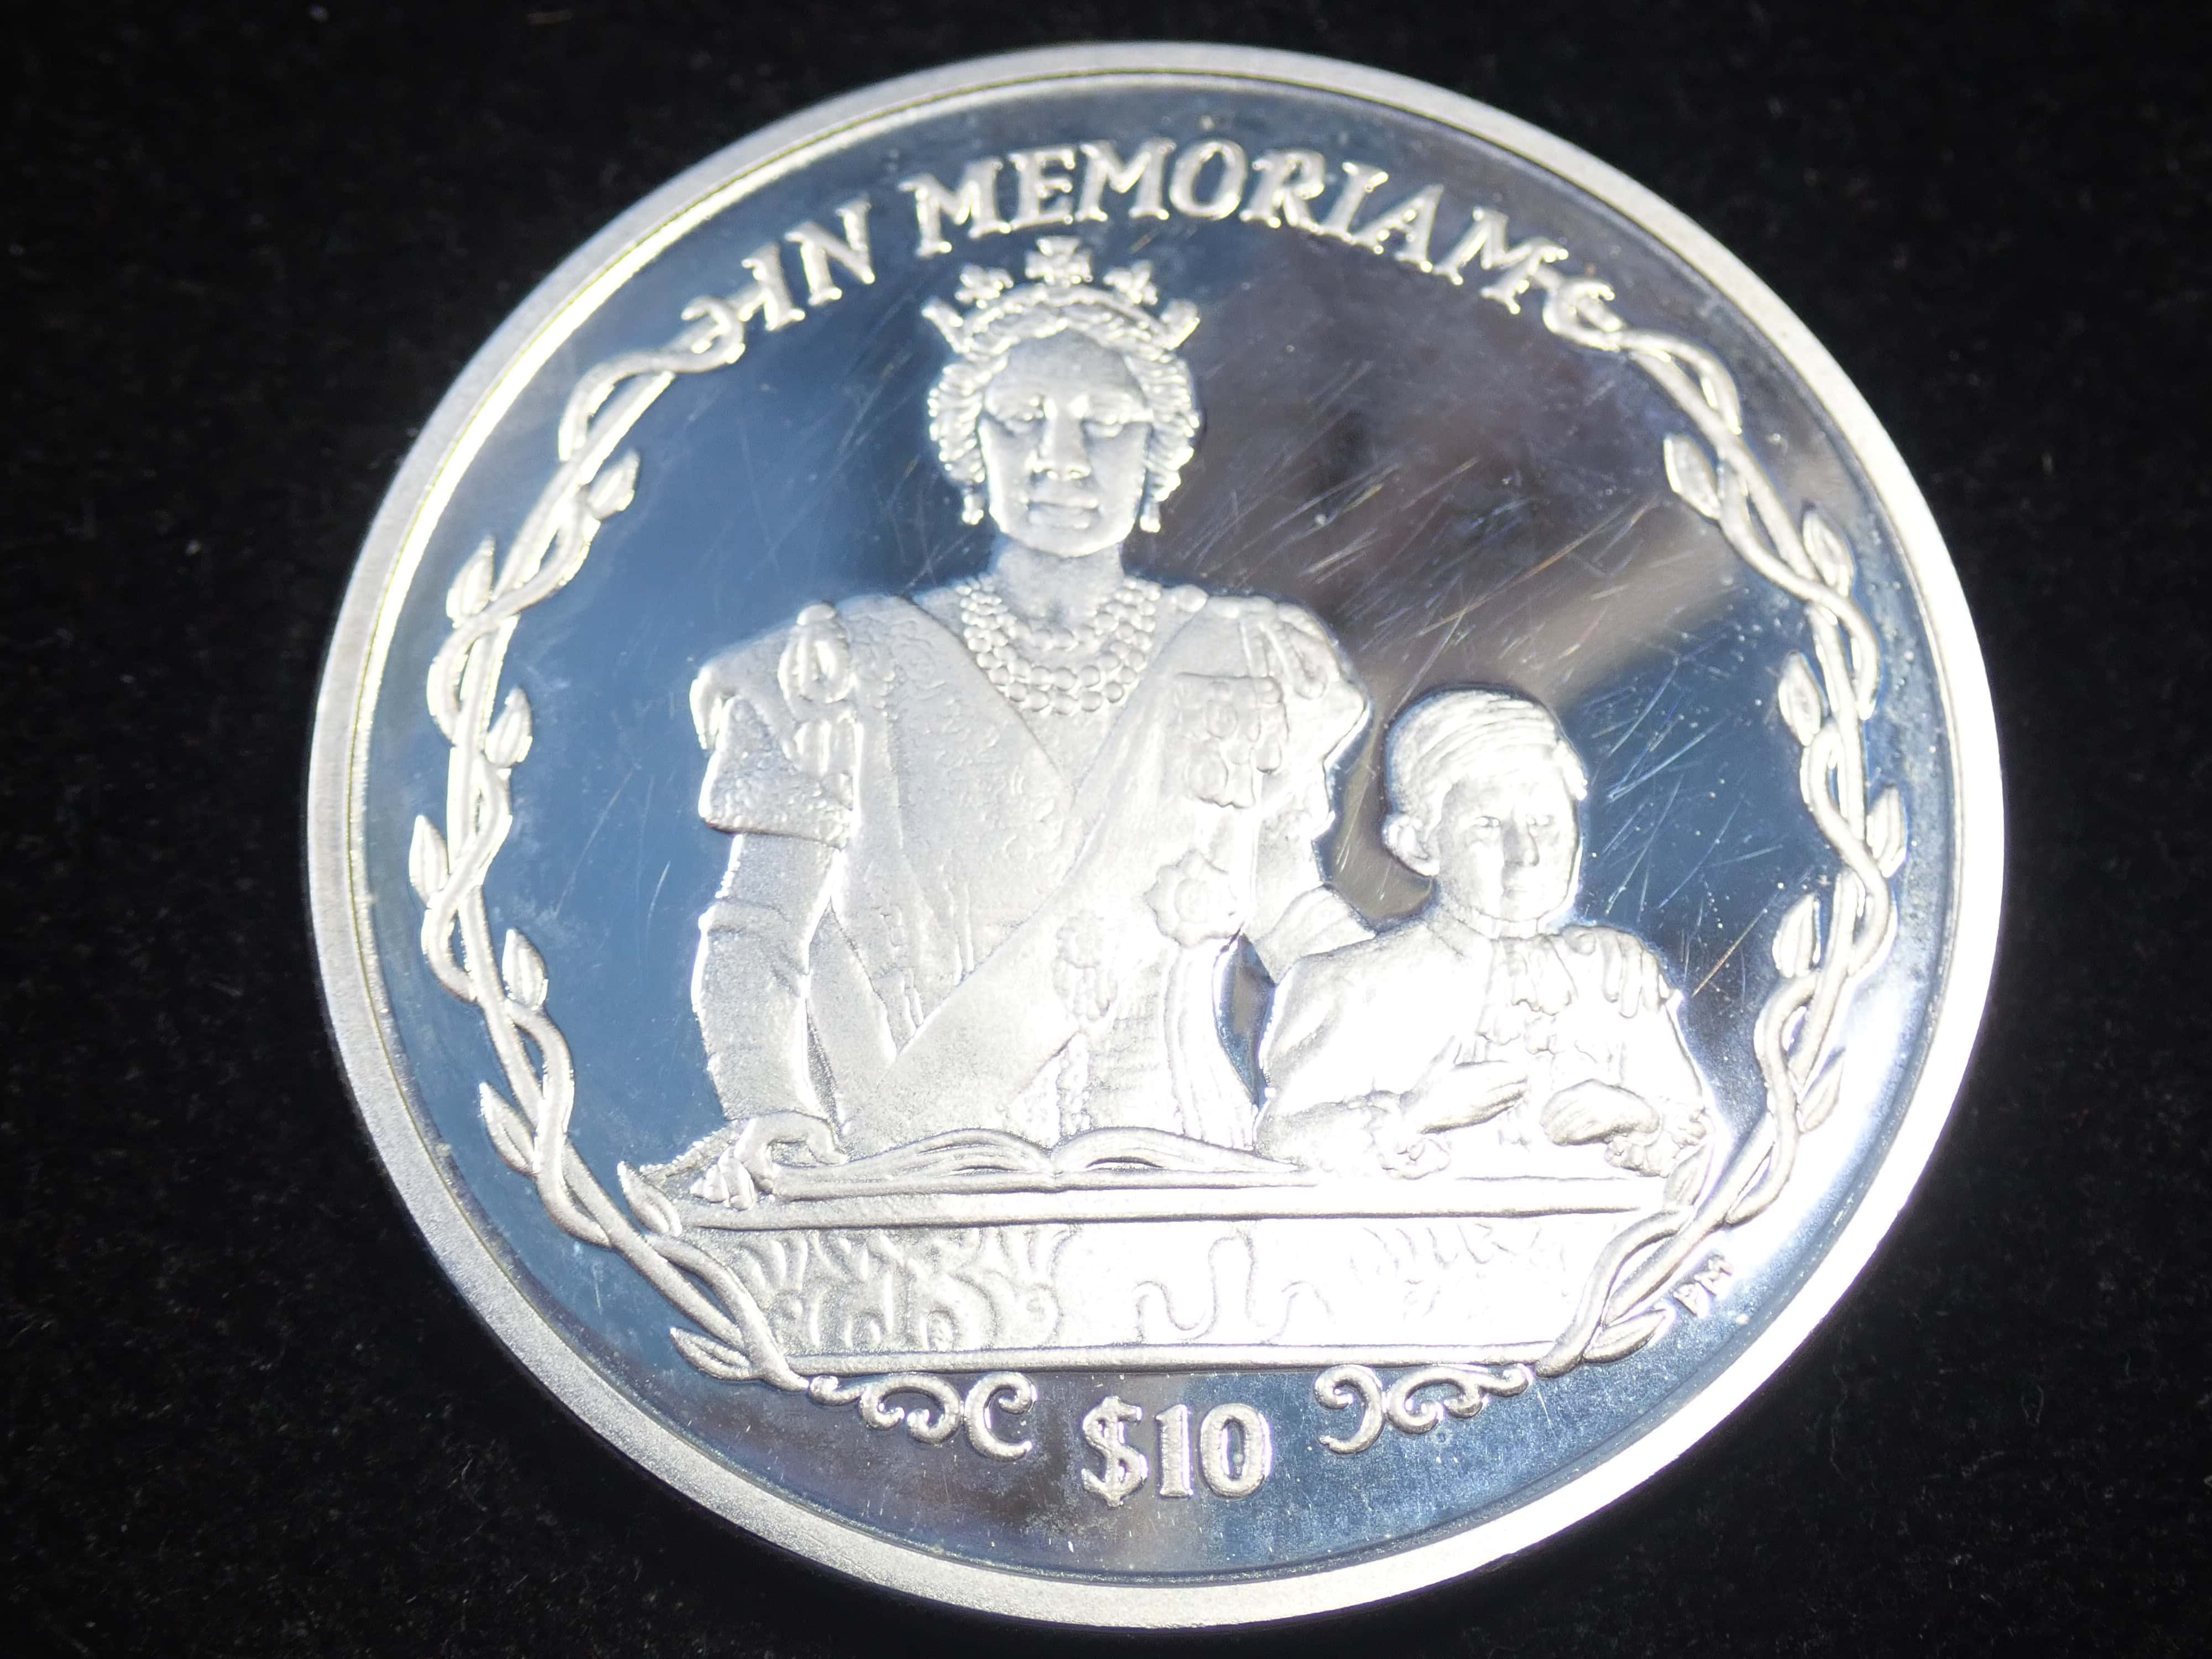 AZZ00830 - Proof 10 Dollar - Elizabeth II Queen Mother & Young Prince Charles 925 Silver Coin British Virgin Islands #21